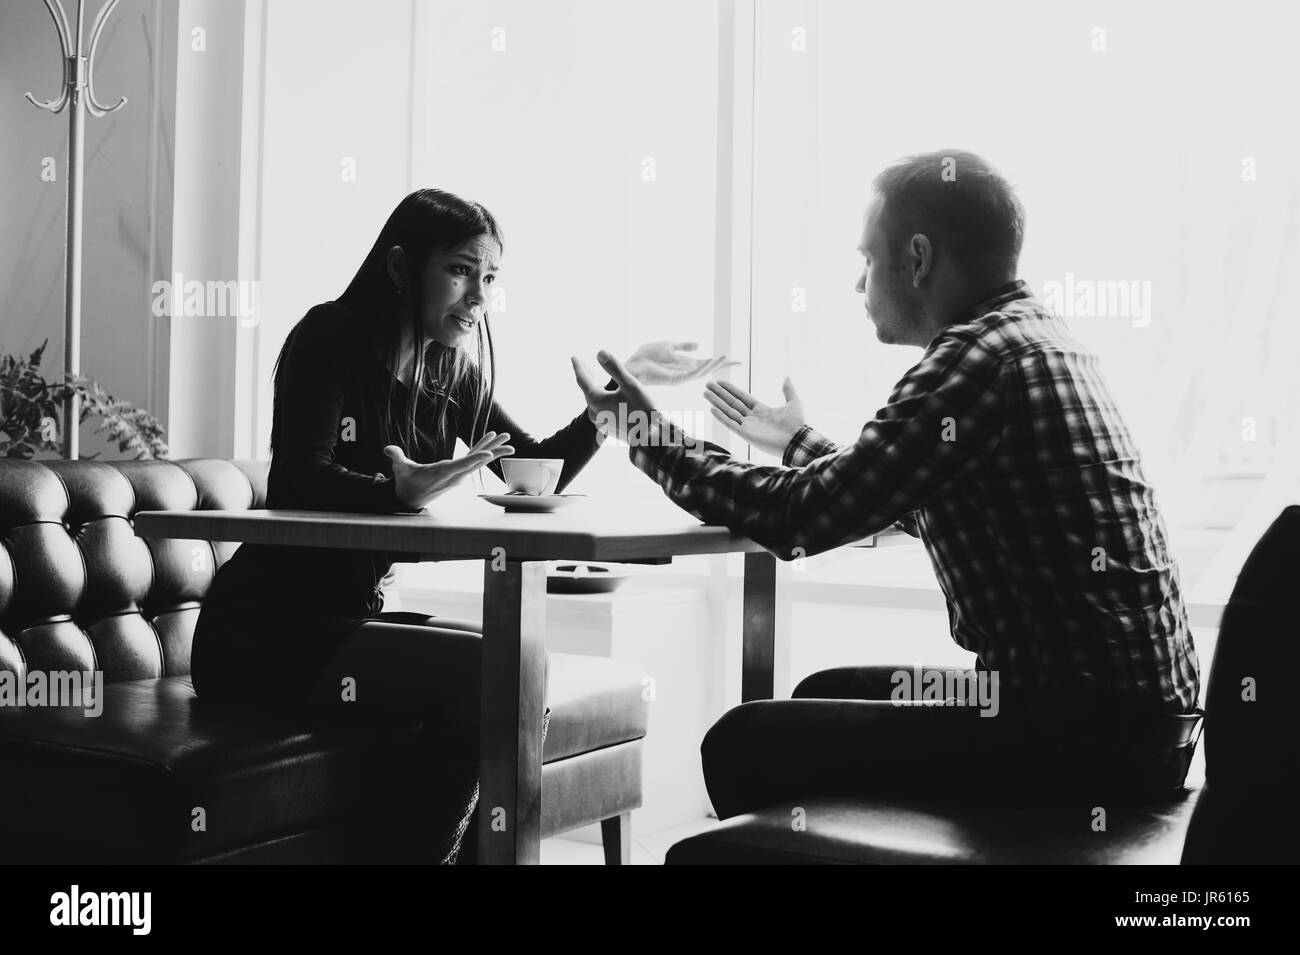 Man and woman in discussions in the restaurant - Stock Image